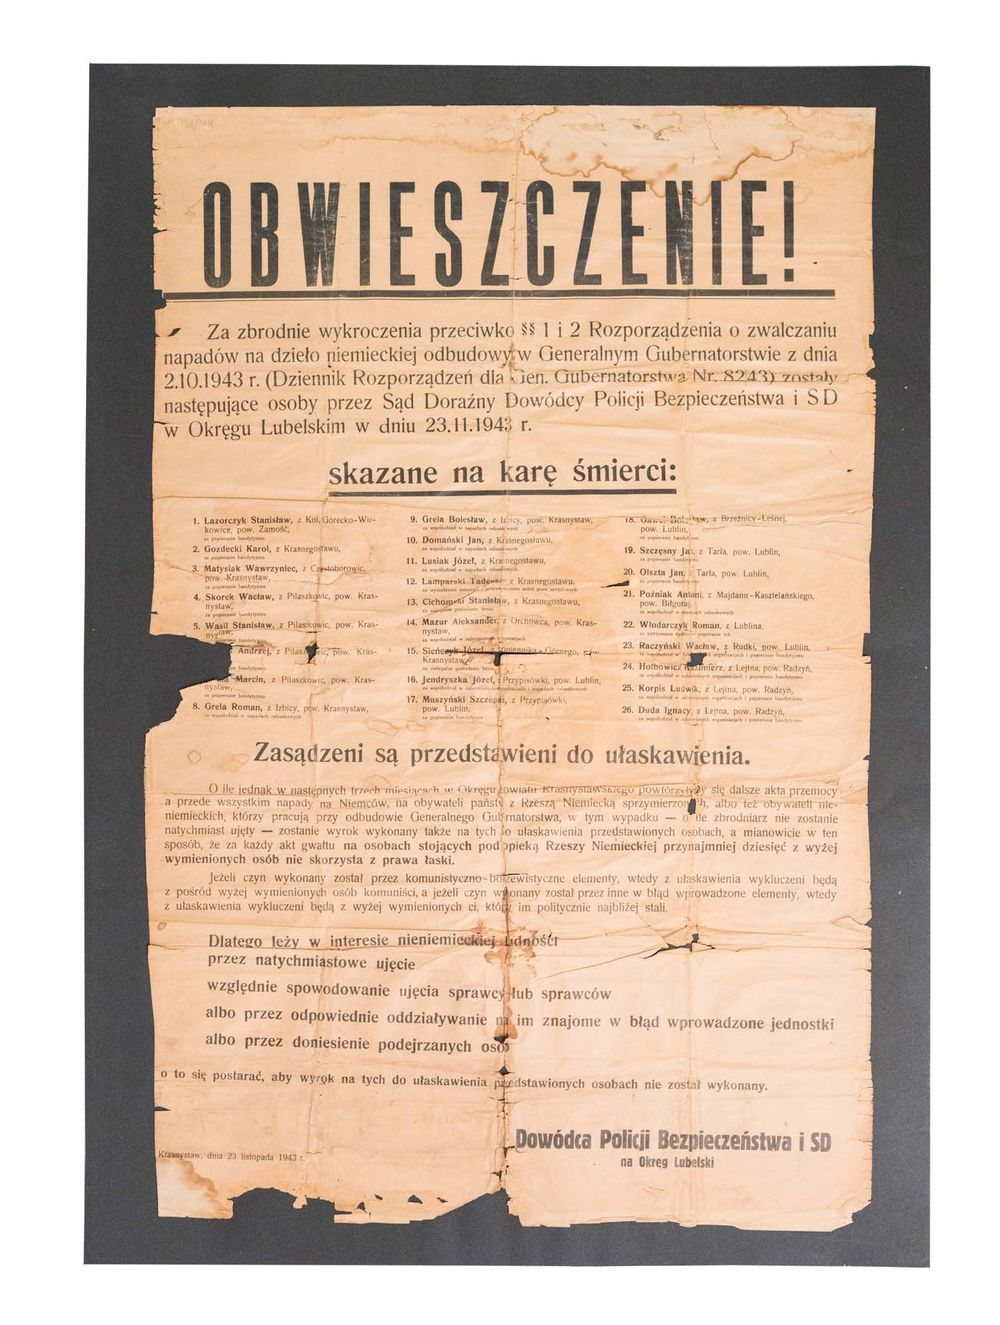 Print – Announcement of the Commander of the Security Police and SD for the Lublin District on the death penalty, paper, print, Krasnystaw, 23 November 1943